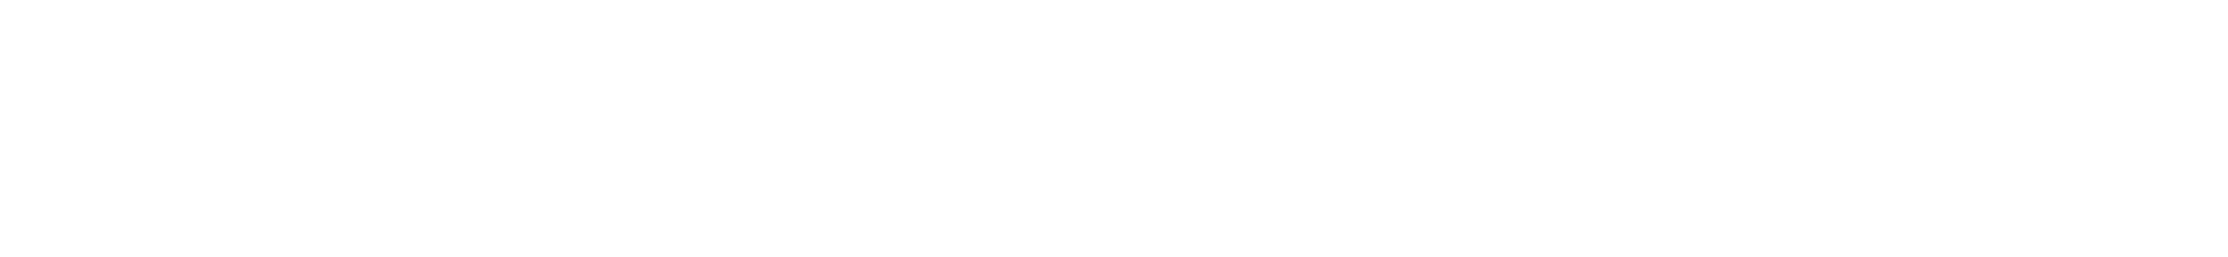 Great British Burger Challenge logo